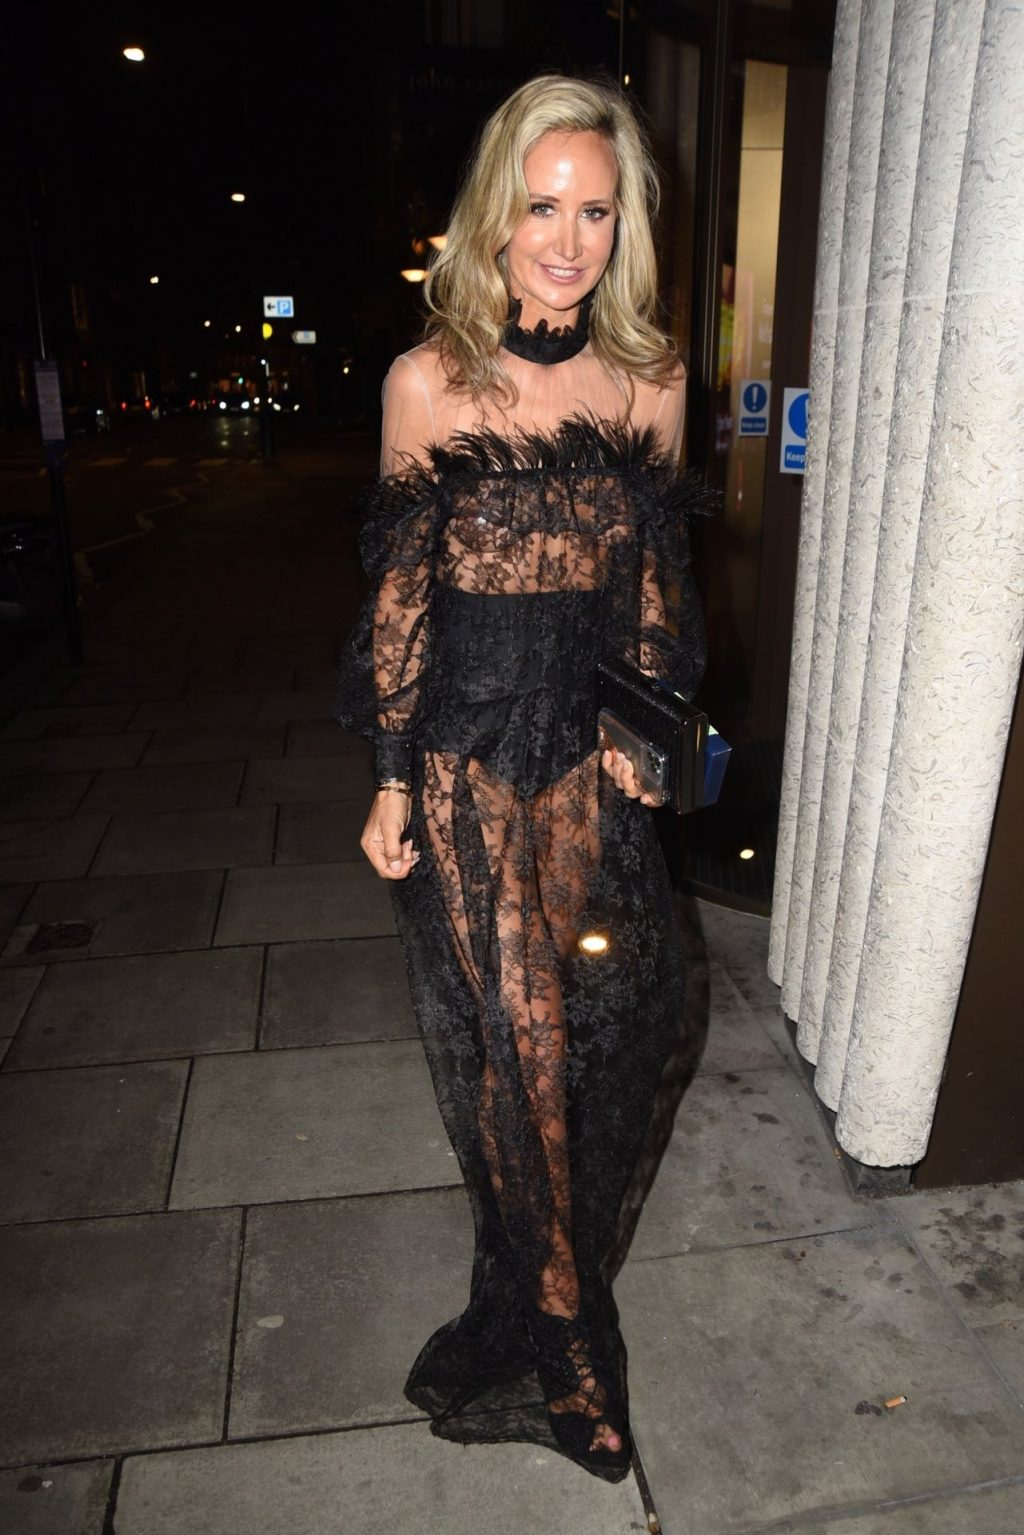 Lady Victoria Hervey Pictured Arriving at the Launch of Her New Brand Hervey Henshall (33 Photos)